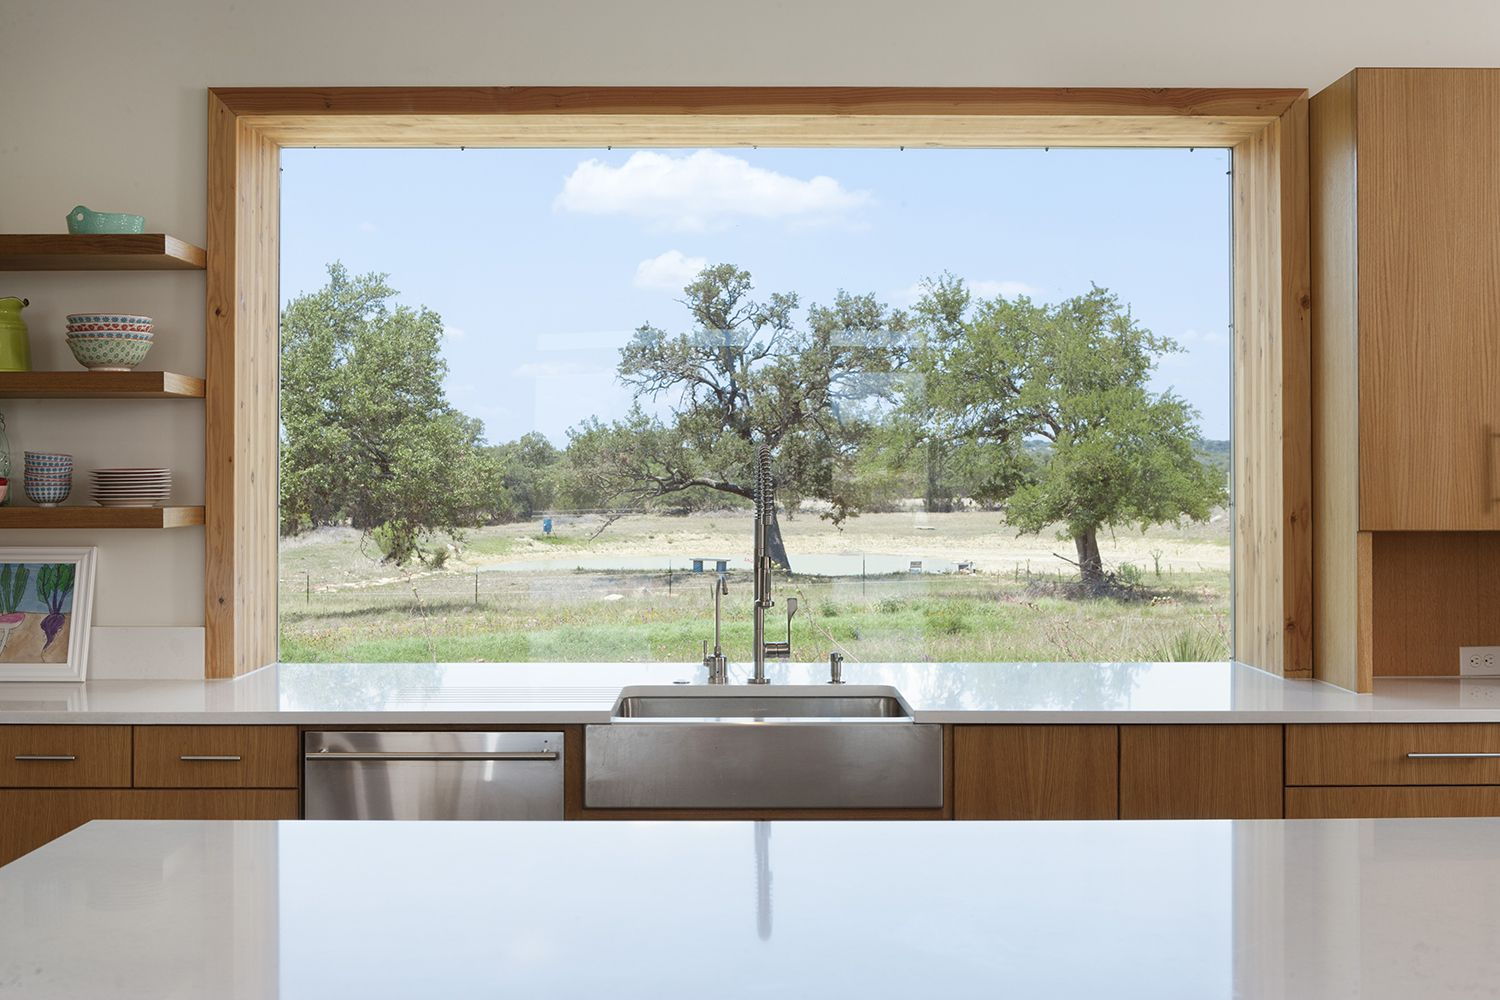 Large window kitchen designs  love the large window and deep counter above the sink also like the